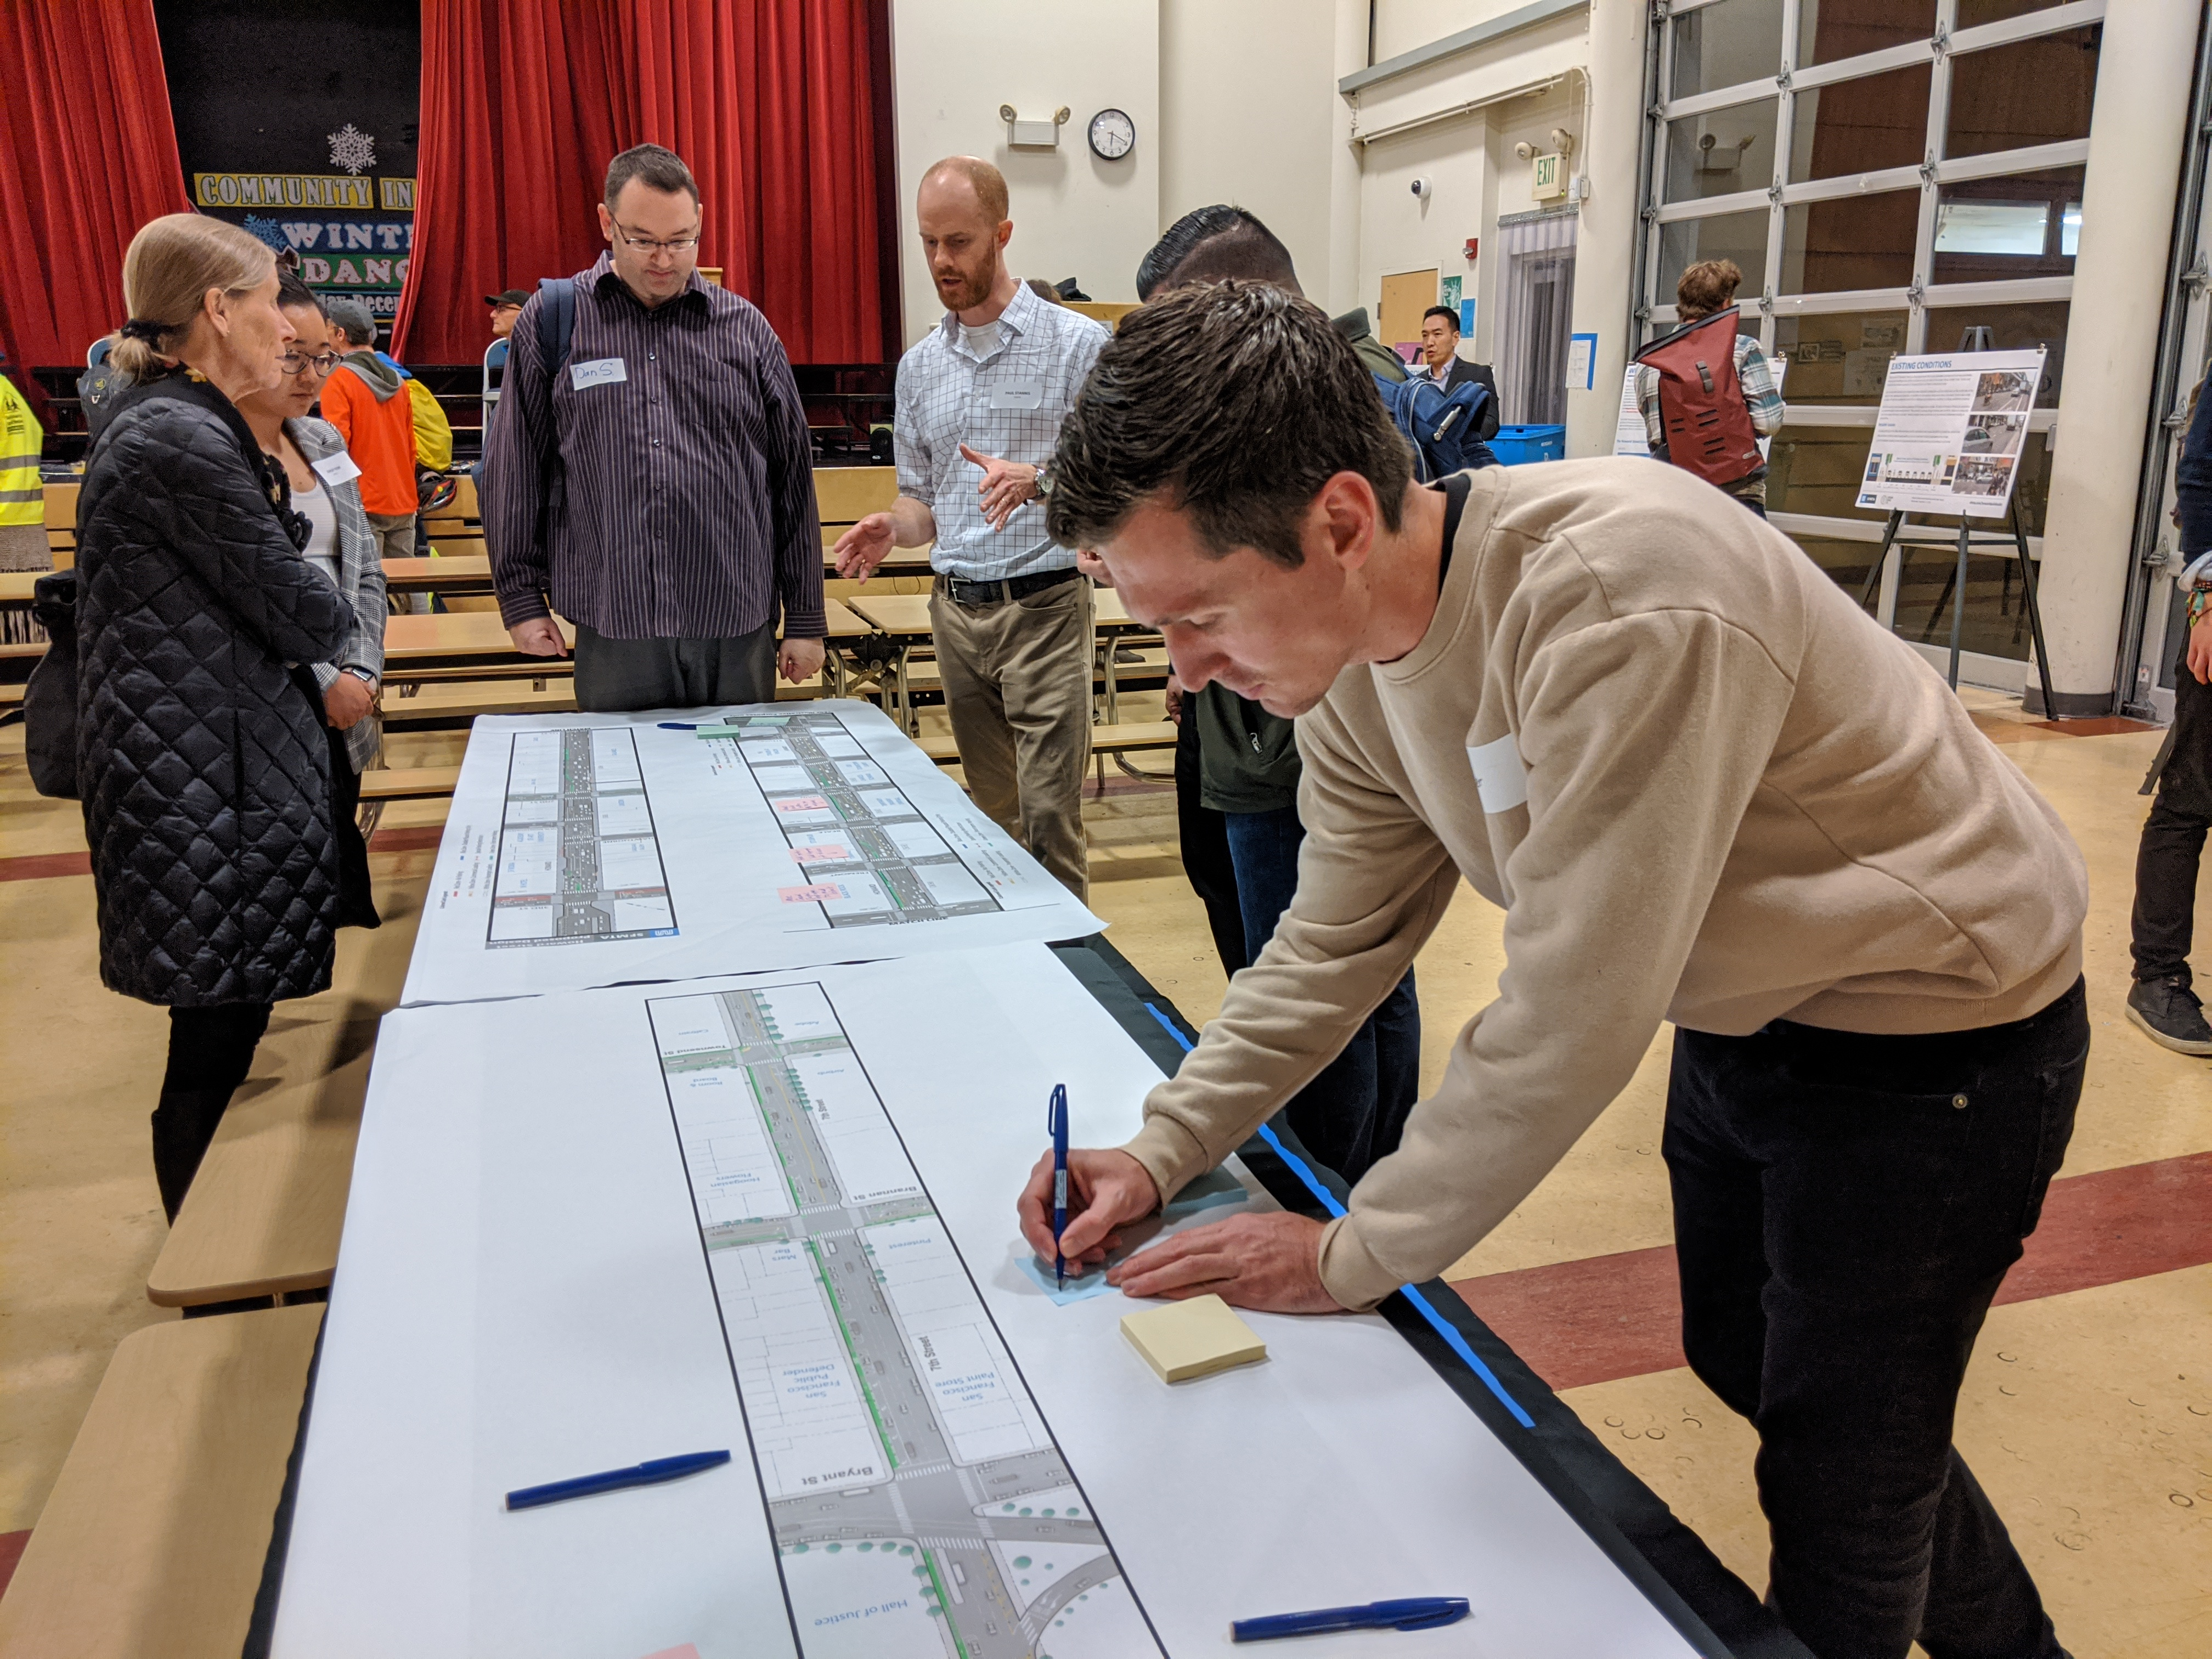 Advocate Parker Day makes notes on the plans at last night's open house